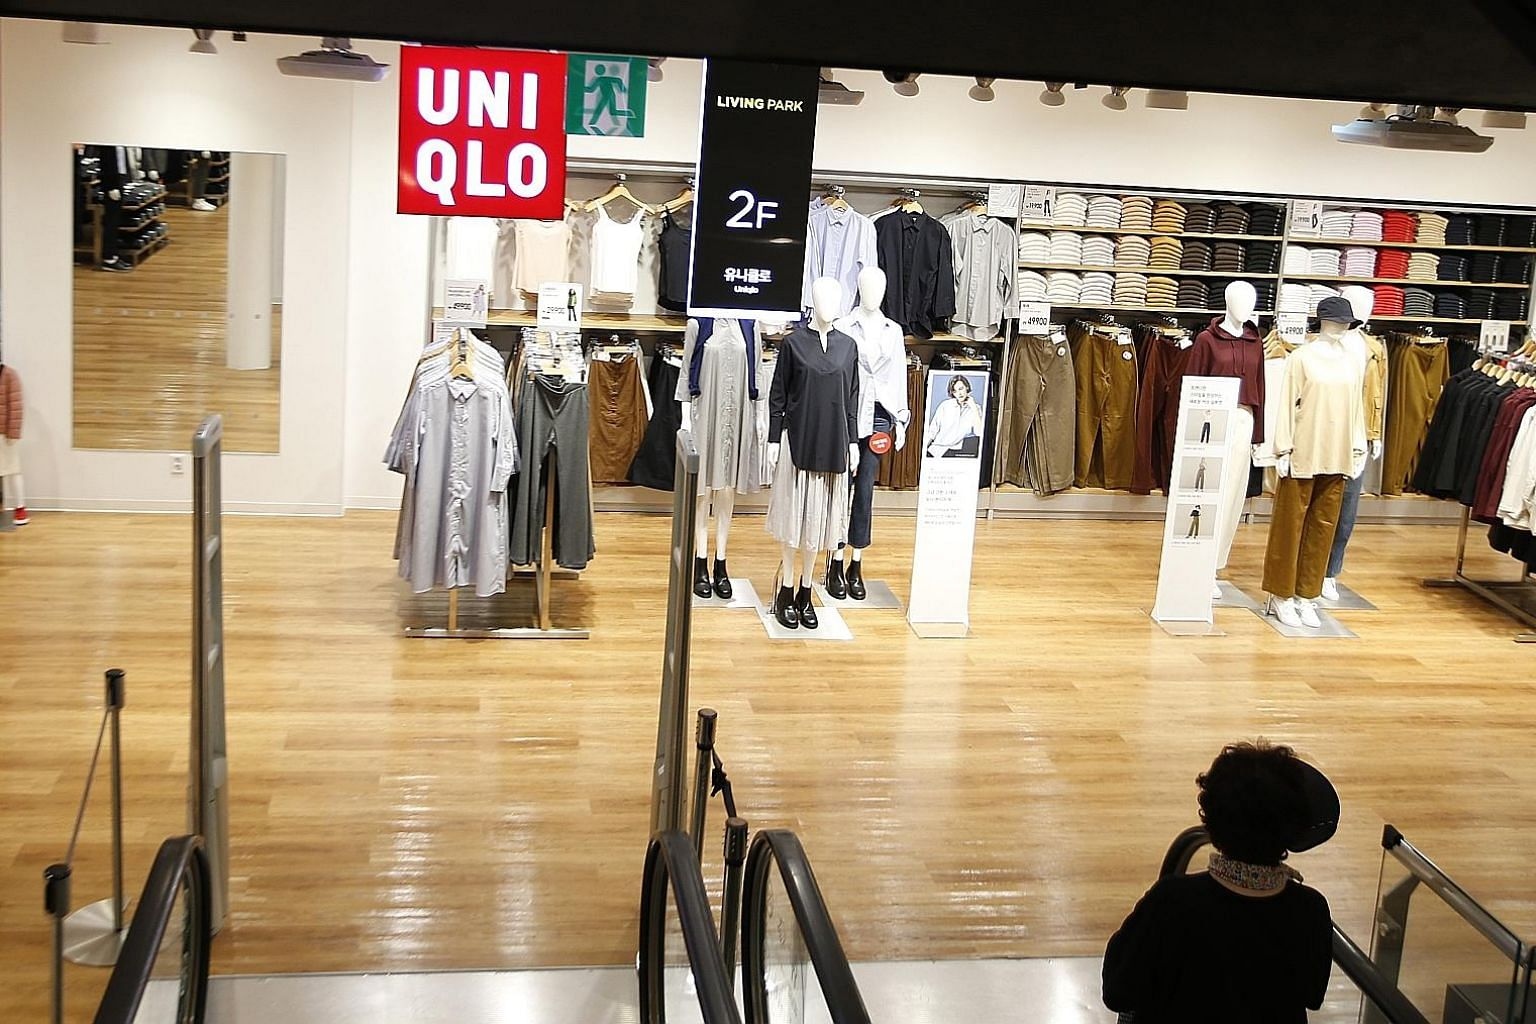 A Uniqlo store in Seoul. A spokesman for Uniqlo owner Fast Retailing confirmed that the boycott has had an impact on sales in South Korea, declining to give figures. The consumer boycott of Japanese goods in the country followed Japan's decision last